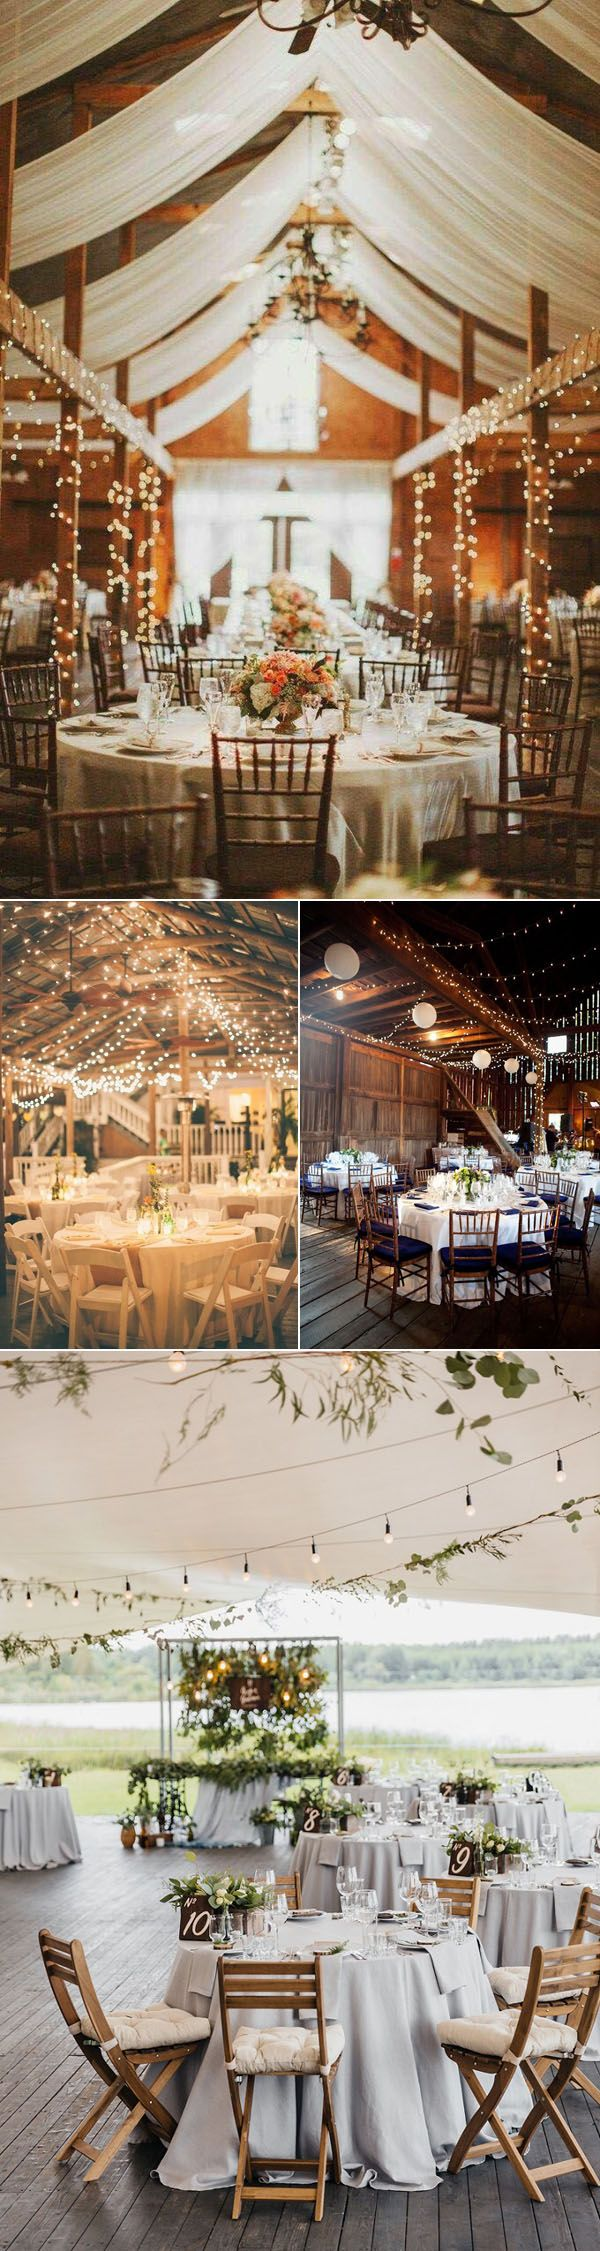 best 10+ rustic wedding theme ideas on pinterest | rustic country